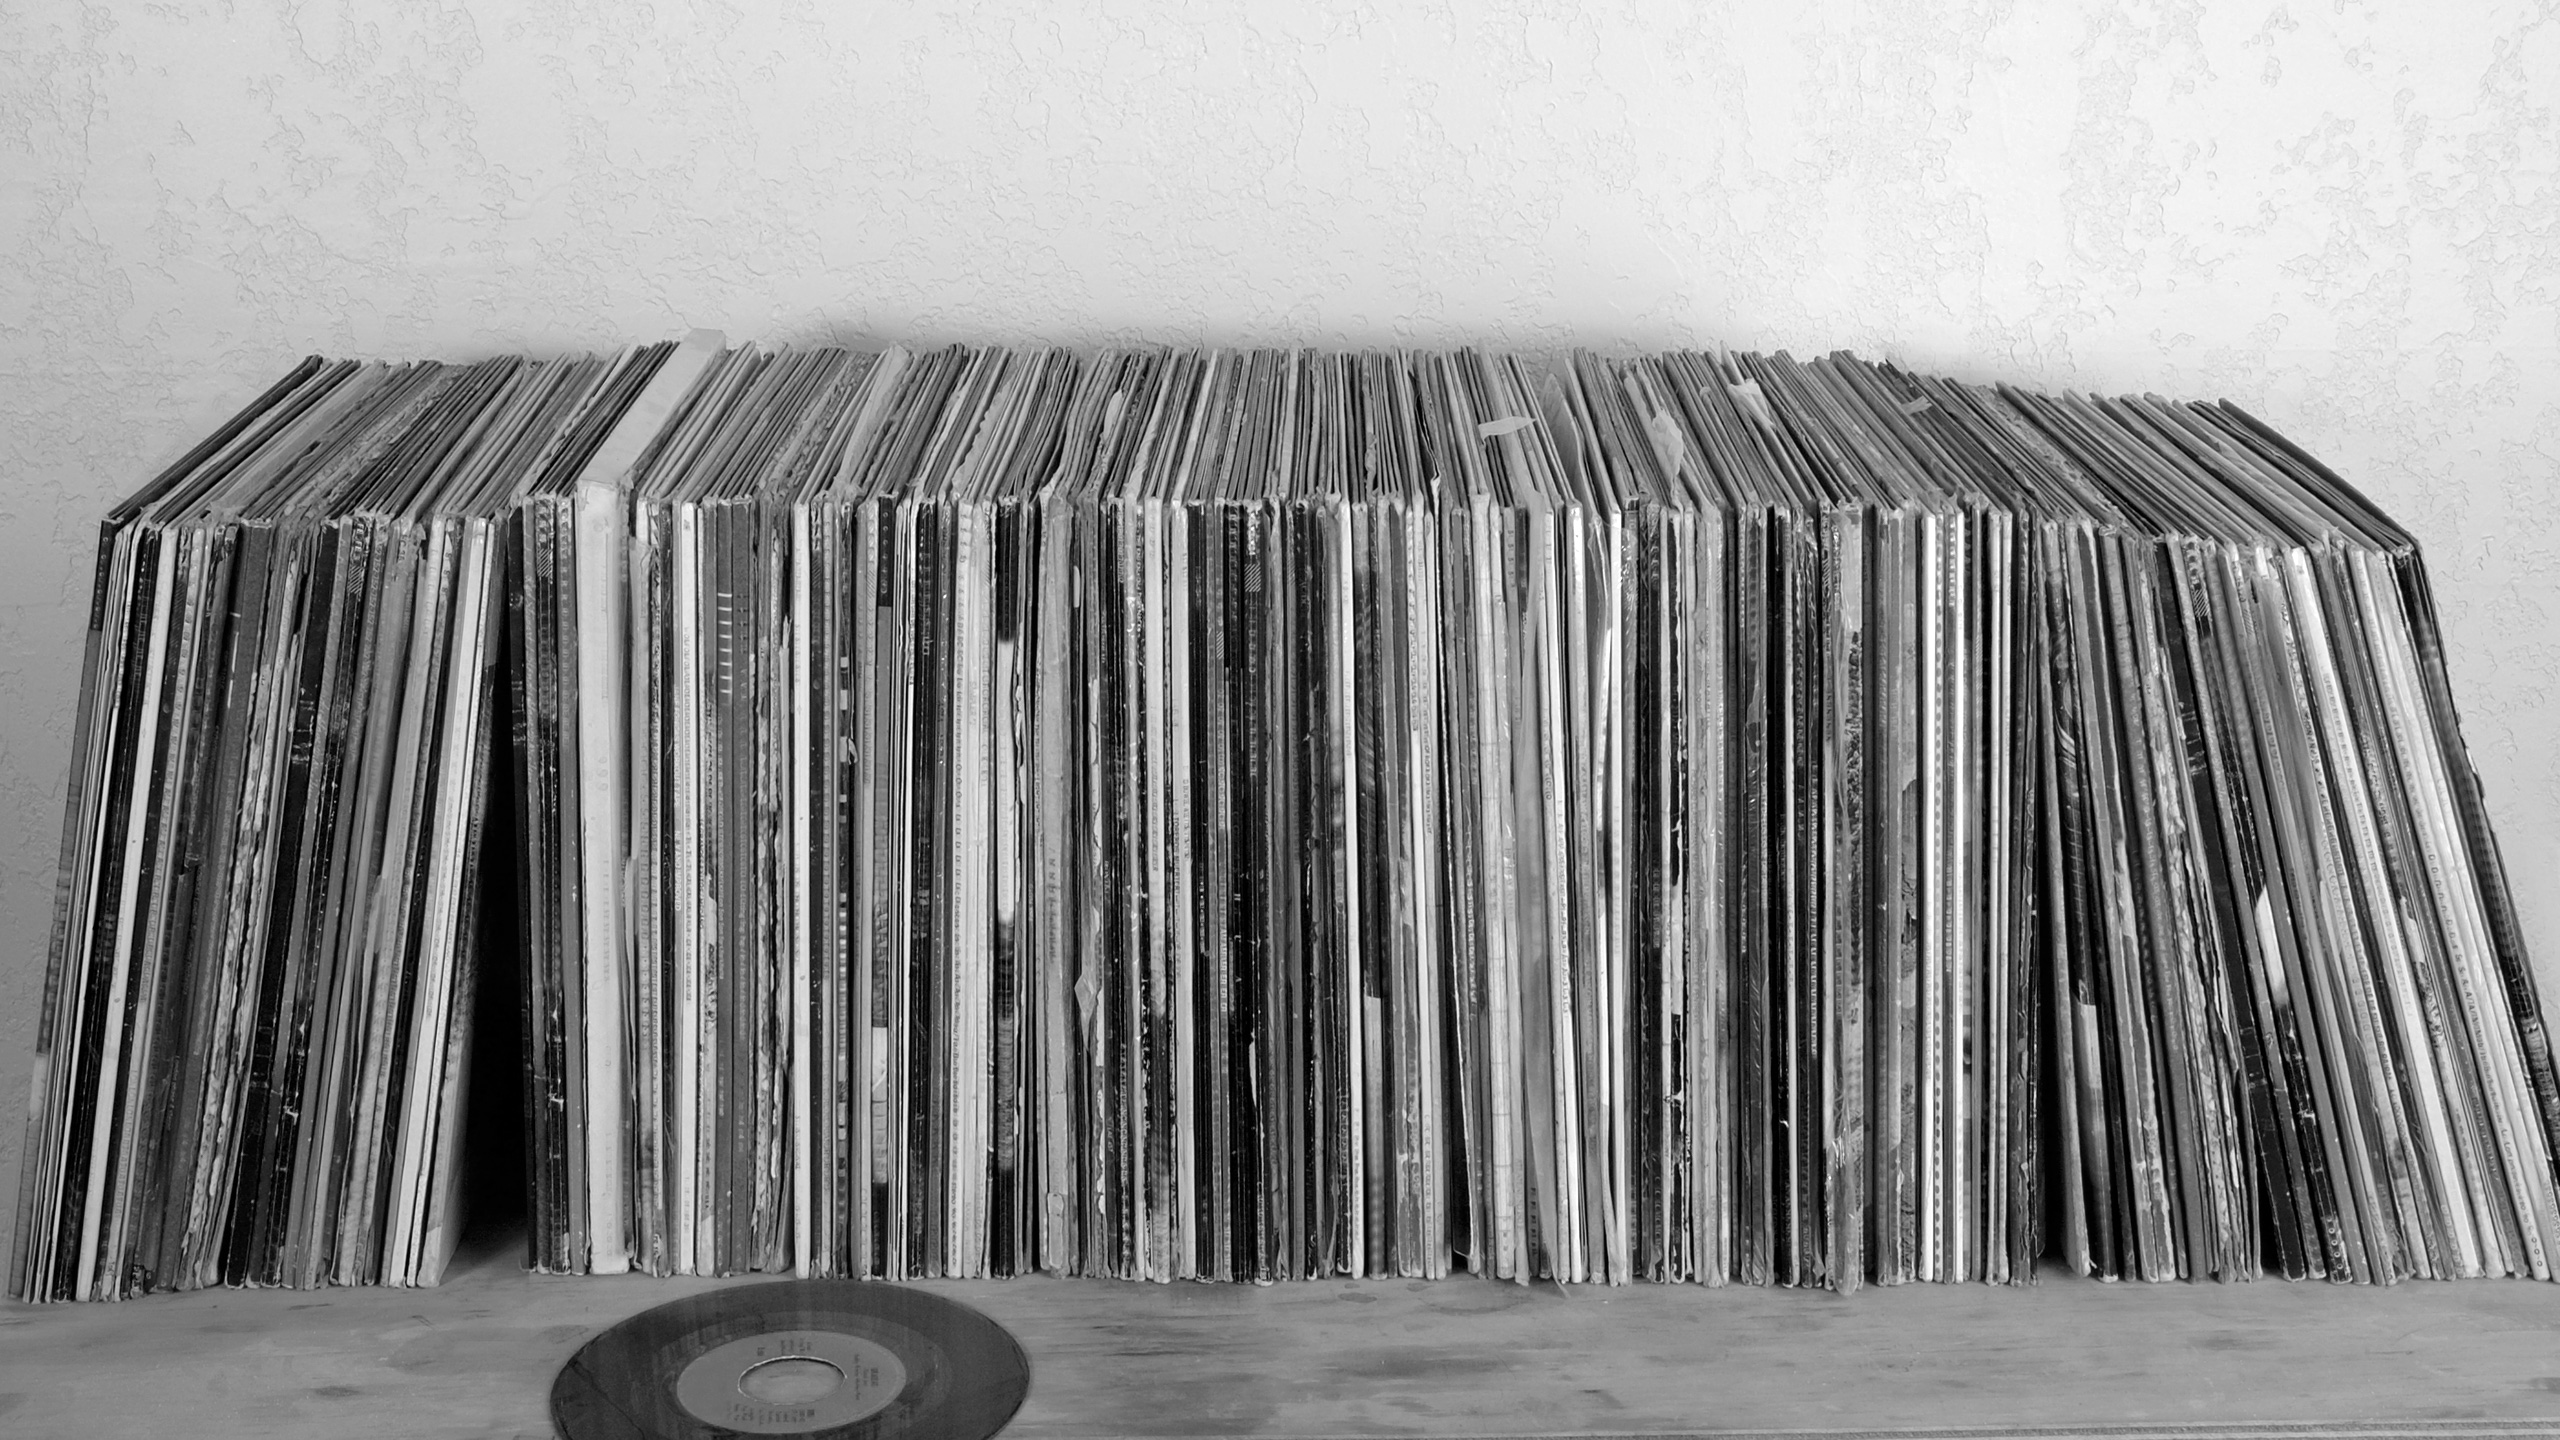 Black & White Photo of Record Collection